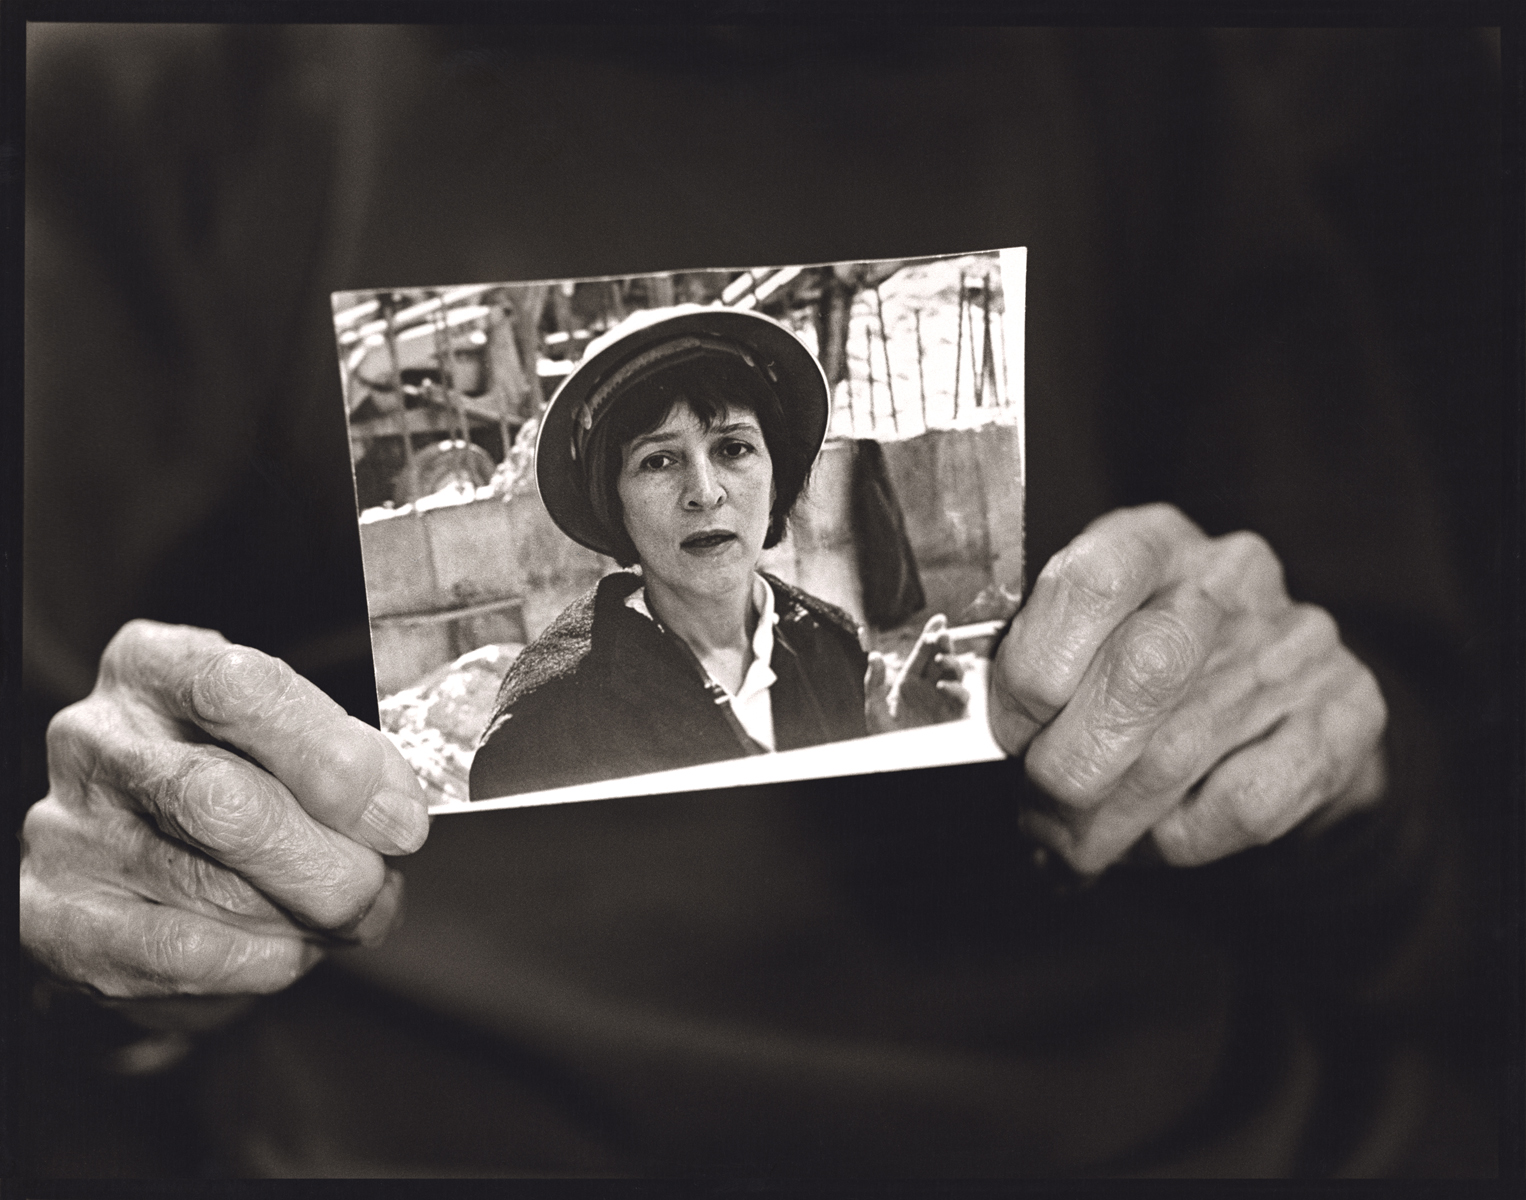 Penny Wolin. Helen Levitt, New York City, 2006. © Penny Wolin, All rights reserved.